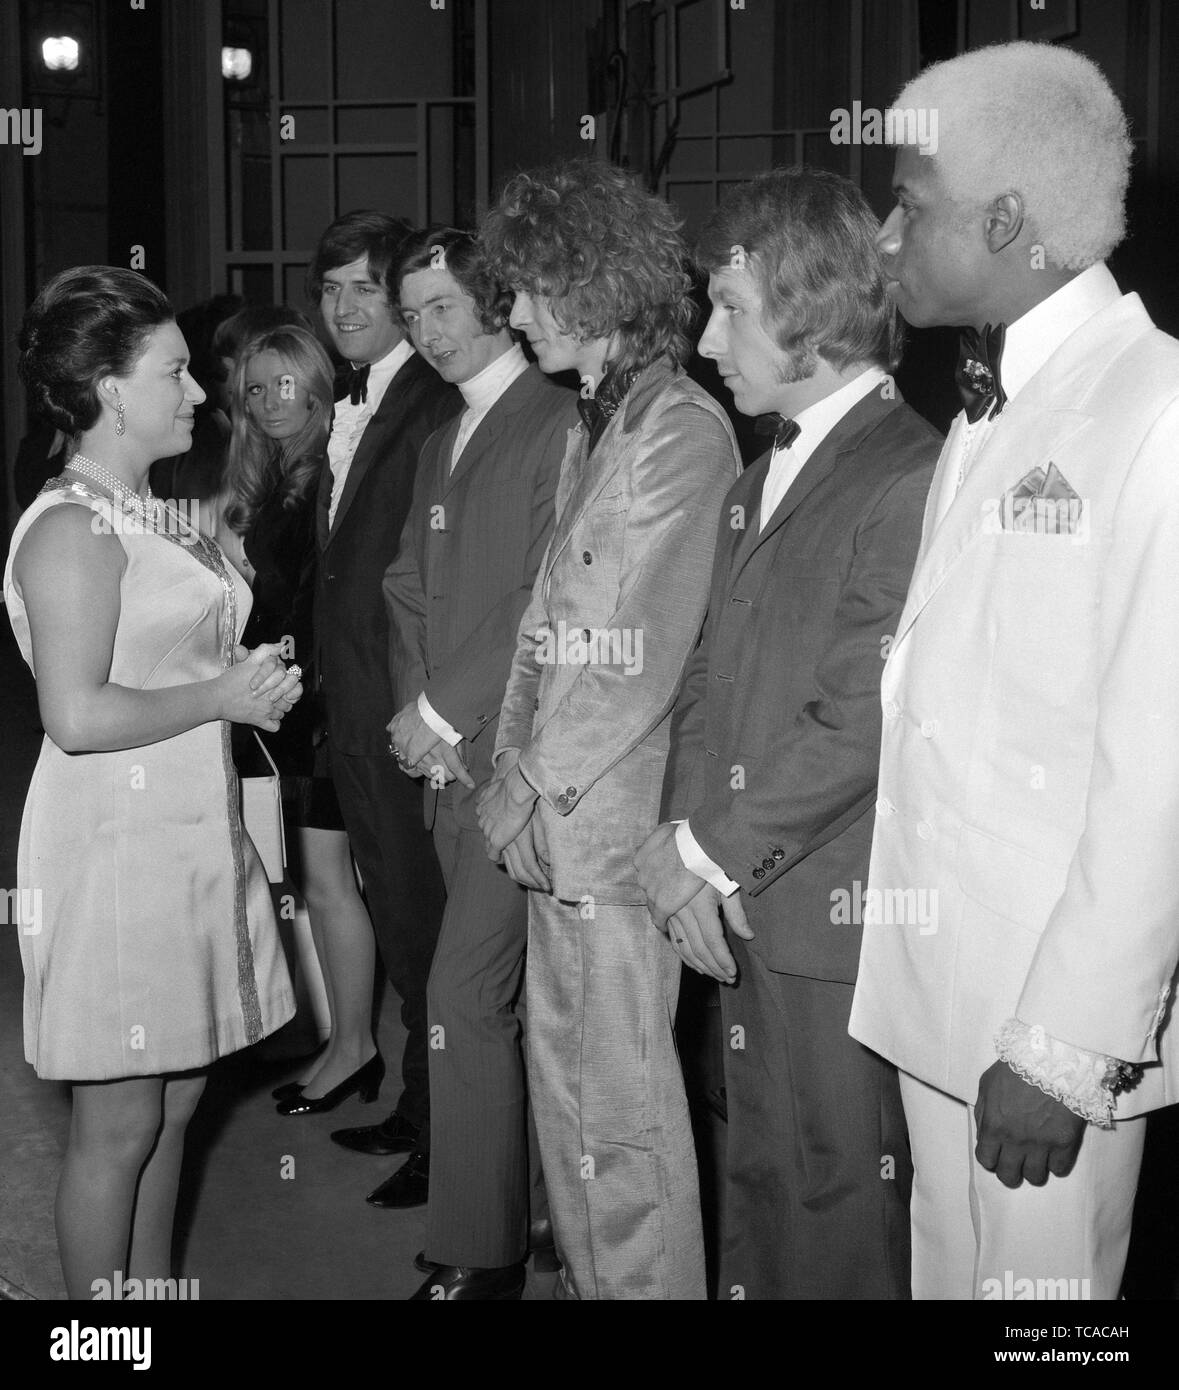 Princess Margaret, President of the Invalid Children's Aid Association (ICAA), meets The Equals pop group at the London Palladium after they appeared in this year's Save Rave Charity Show, aiding the ICAA. Clodagh Rogers, the singer (background) replaced The Marmalade, who had to withdraw. *David Bowie in centre Stock Photo